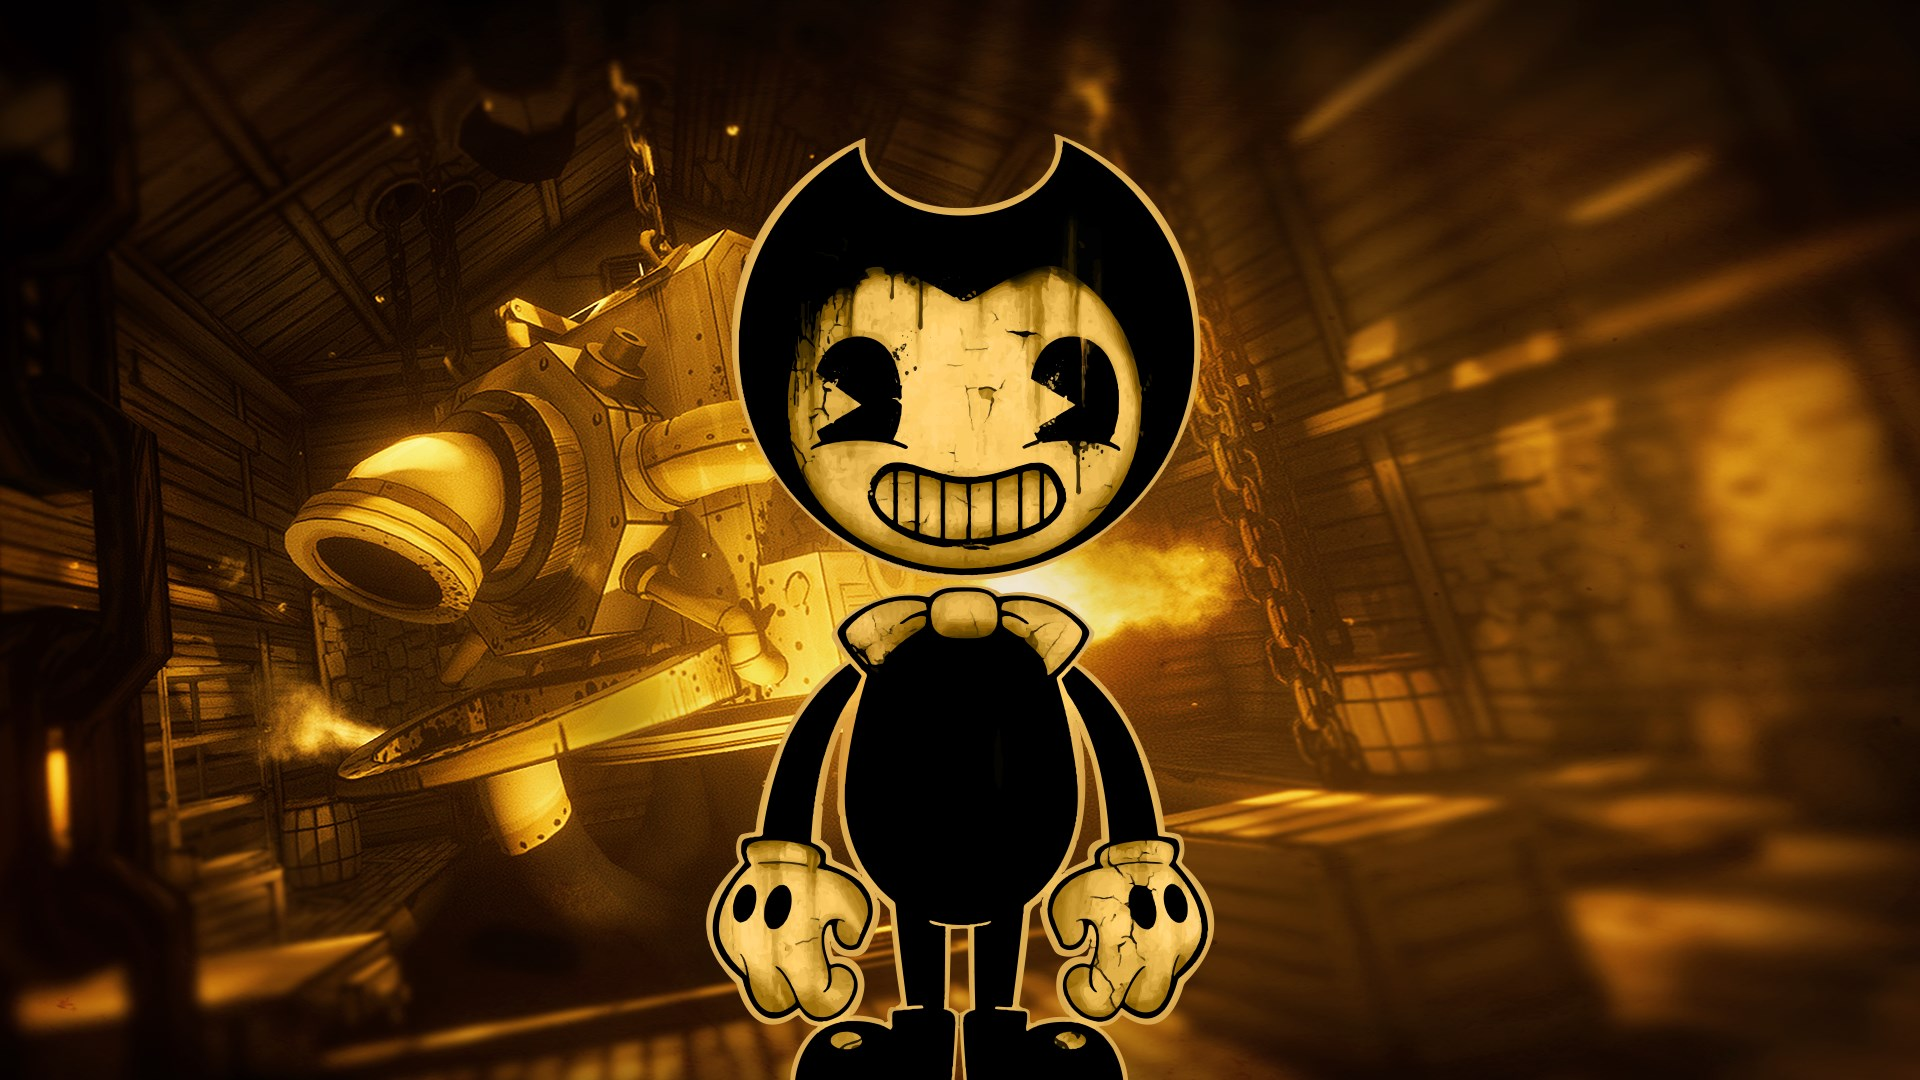 bendy and the ink machine chapter 3 download pc